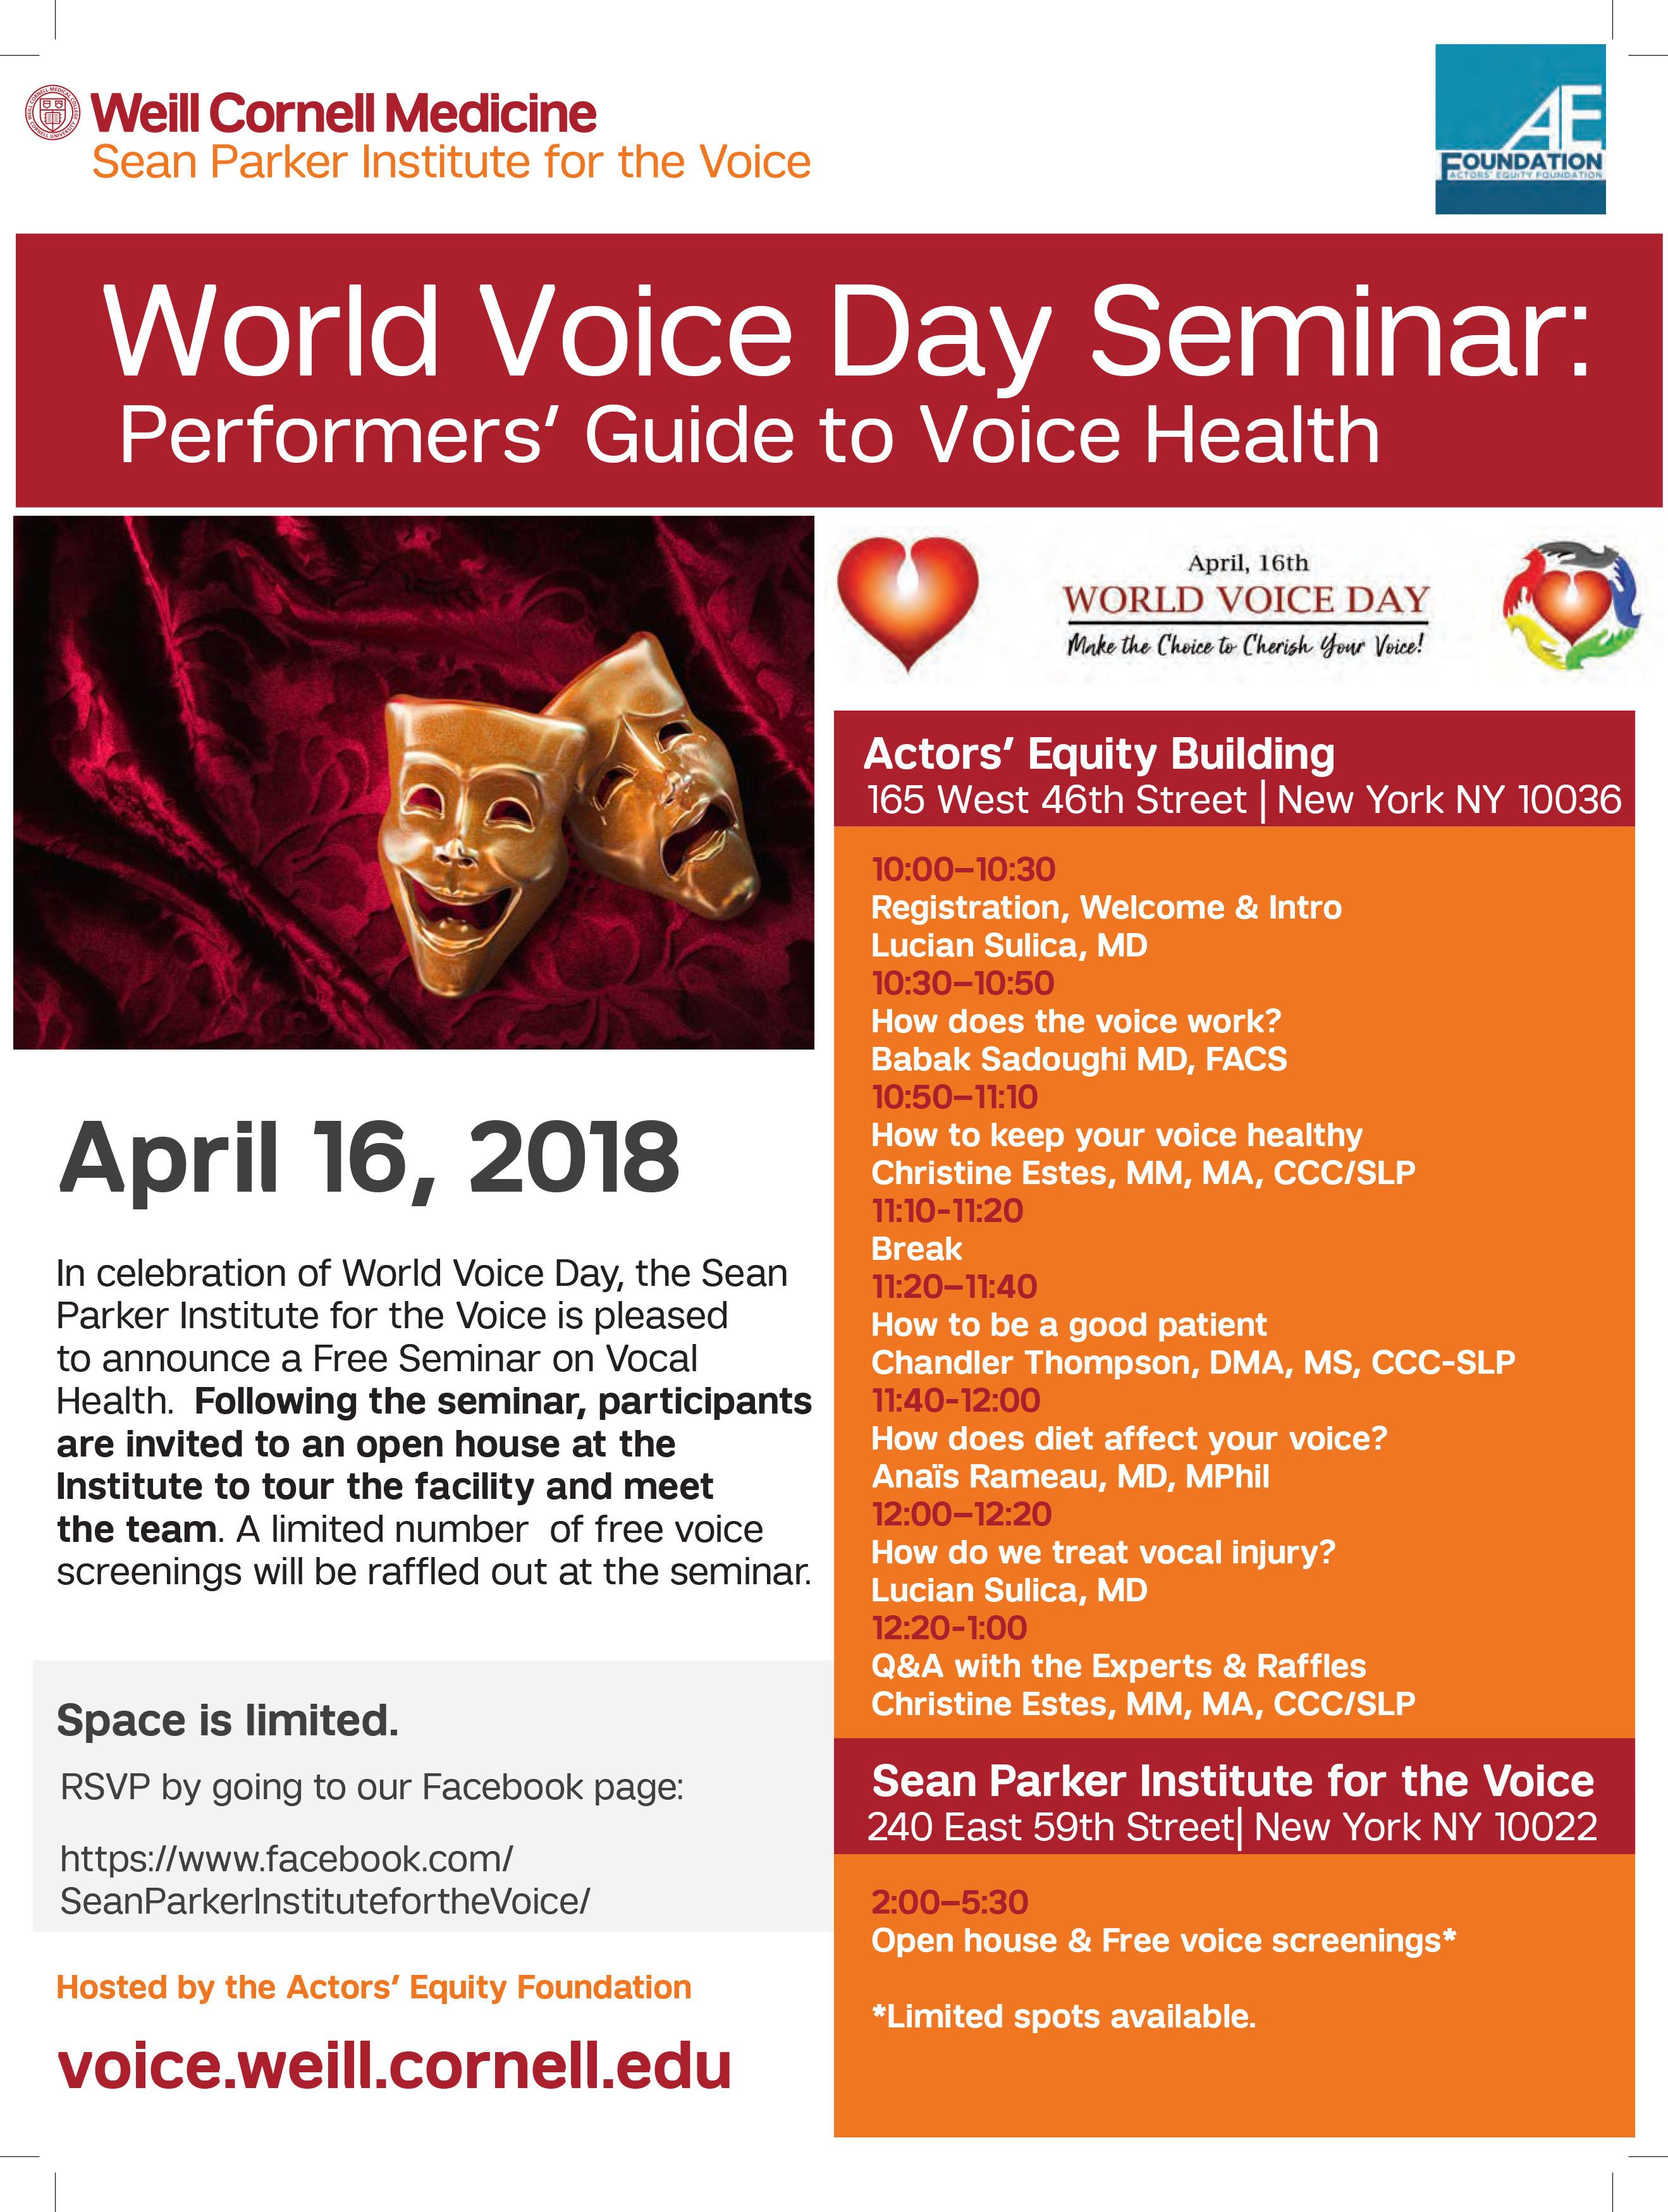 Sean Parker Institute World Voice Day Seminar